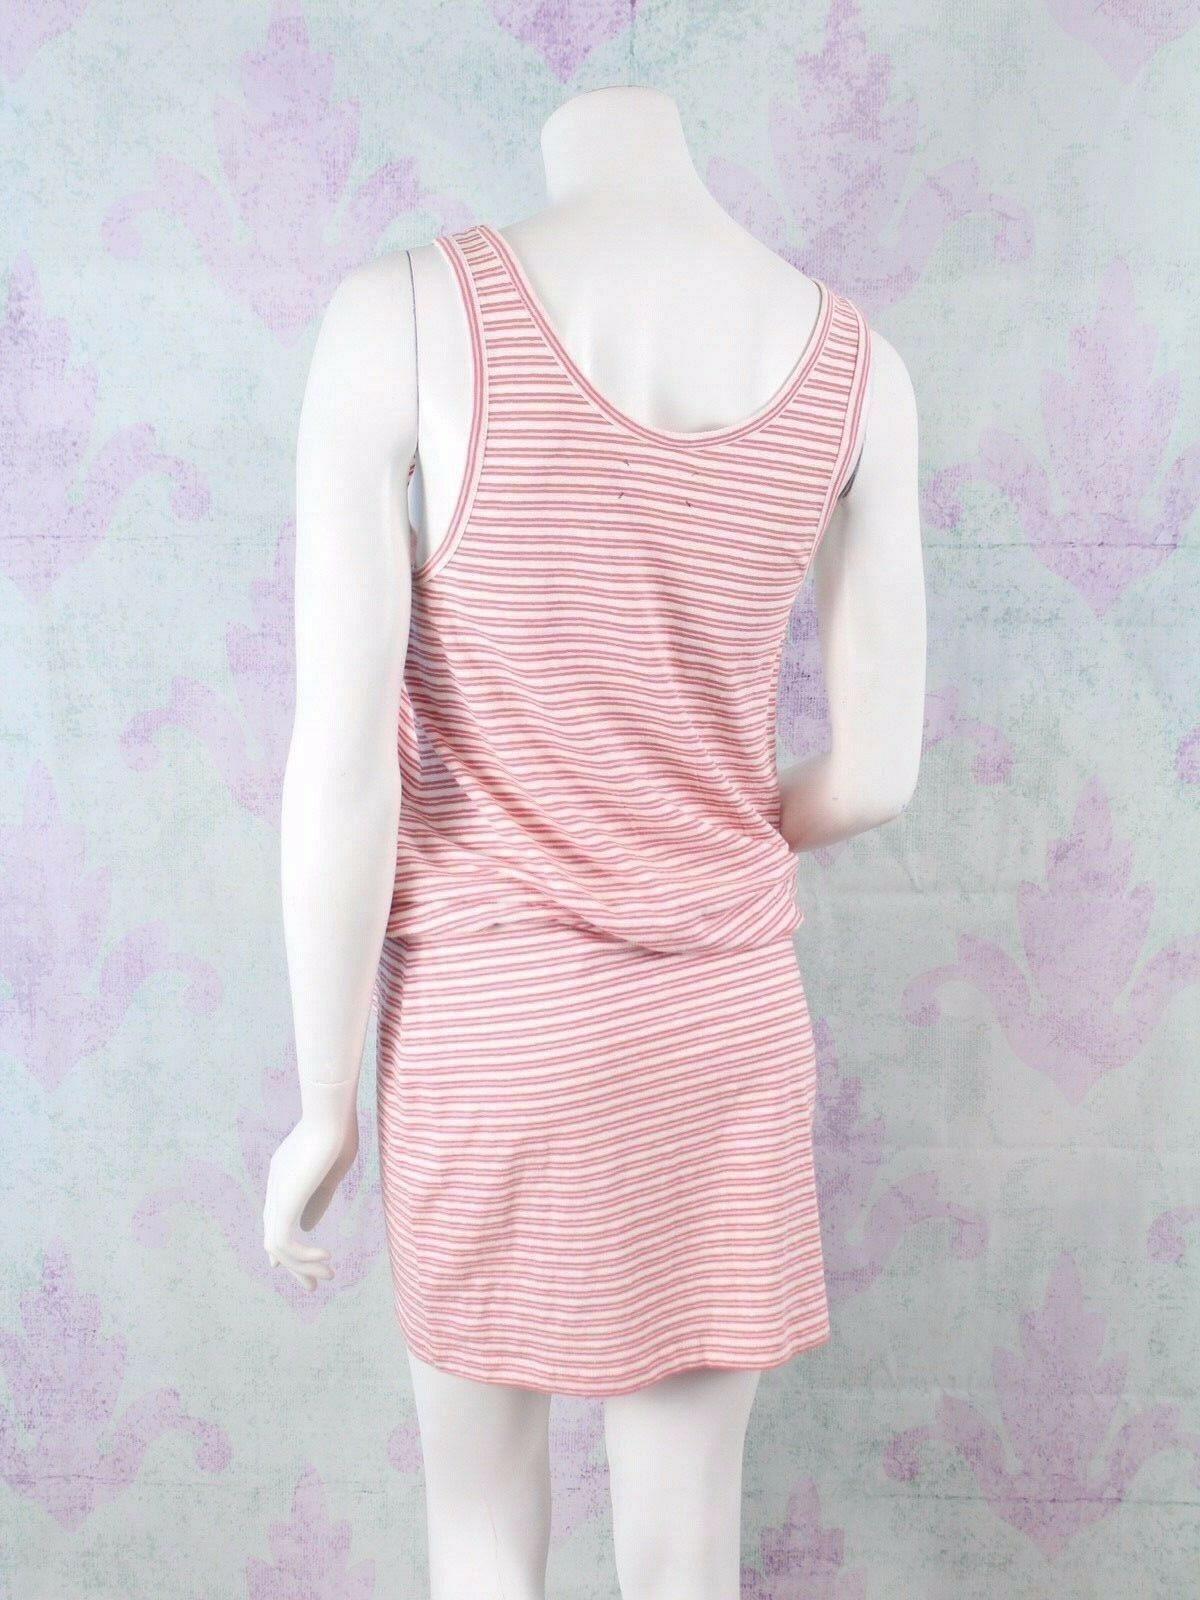 Lou & Grey Small S Ann Taylor LOFT Orange Stripe Linen Cotton Blouson Tank Dress